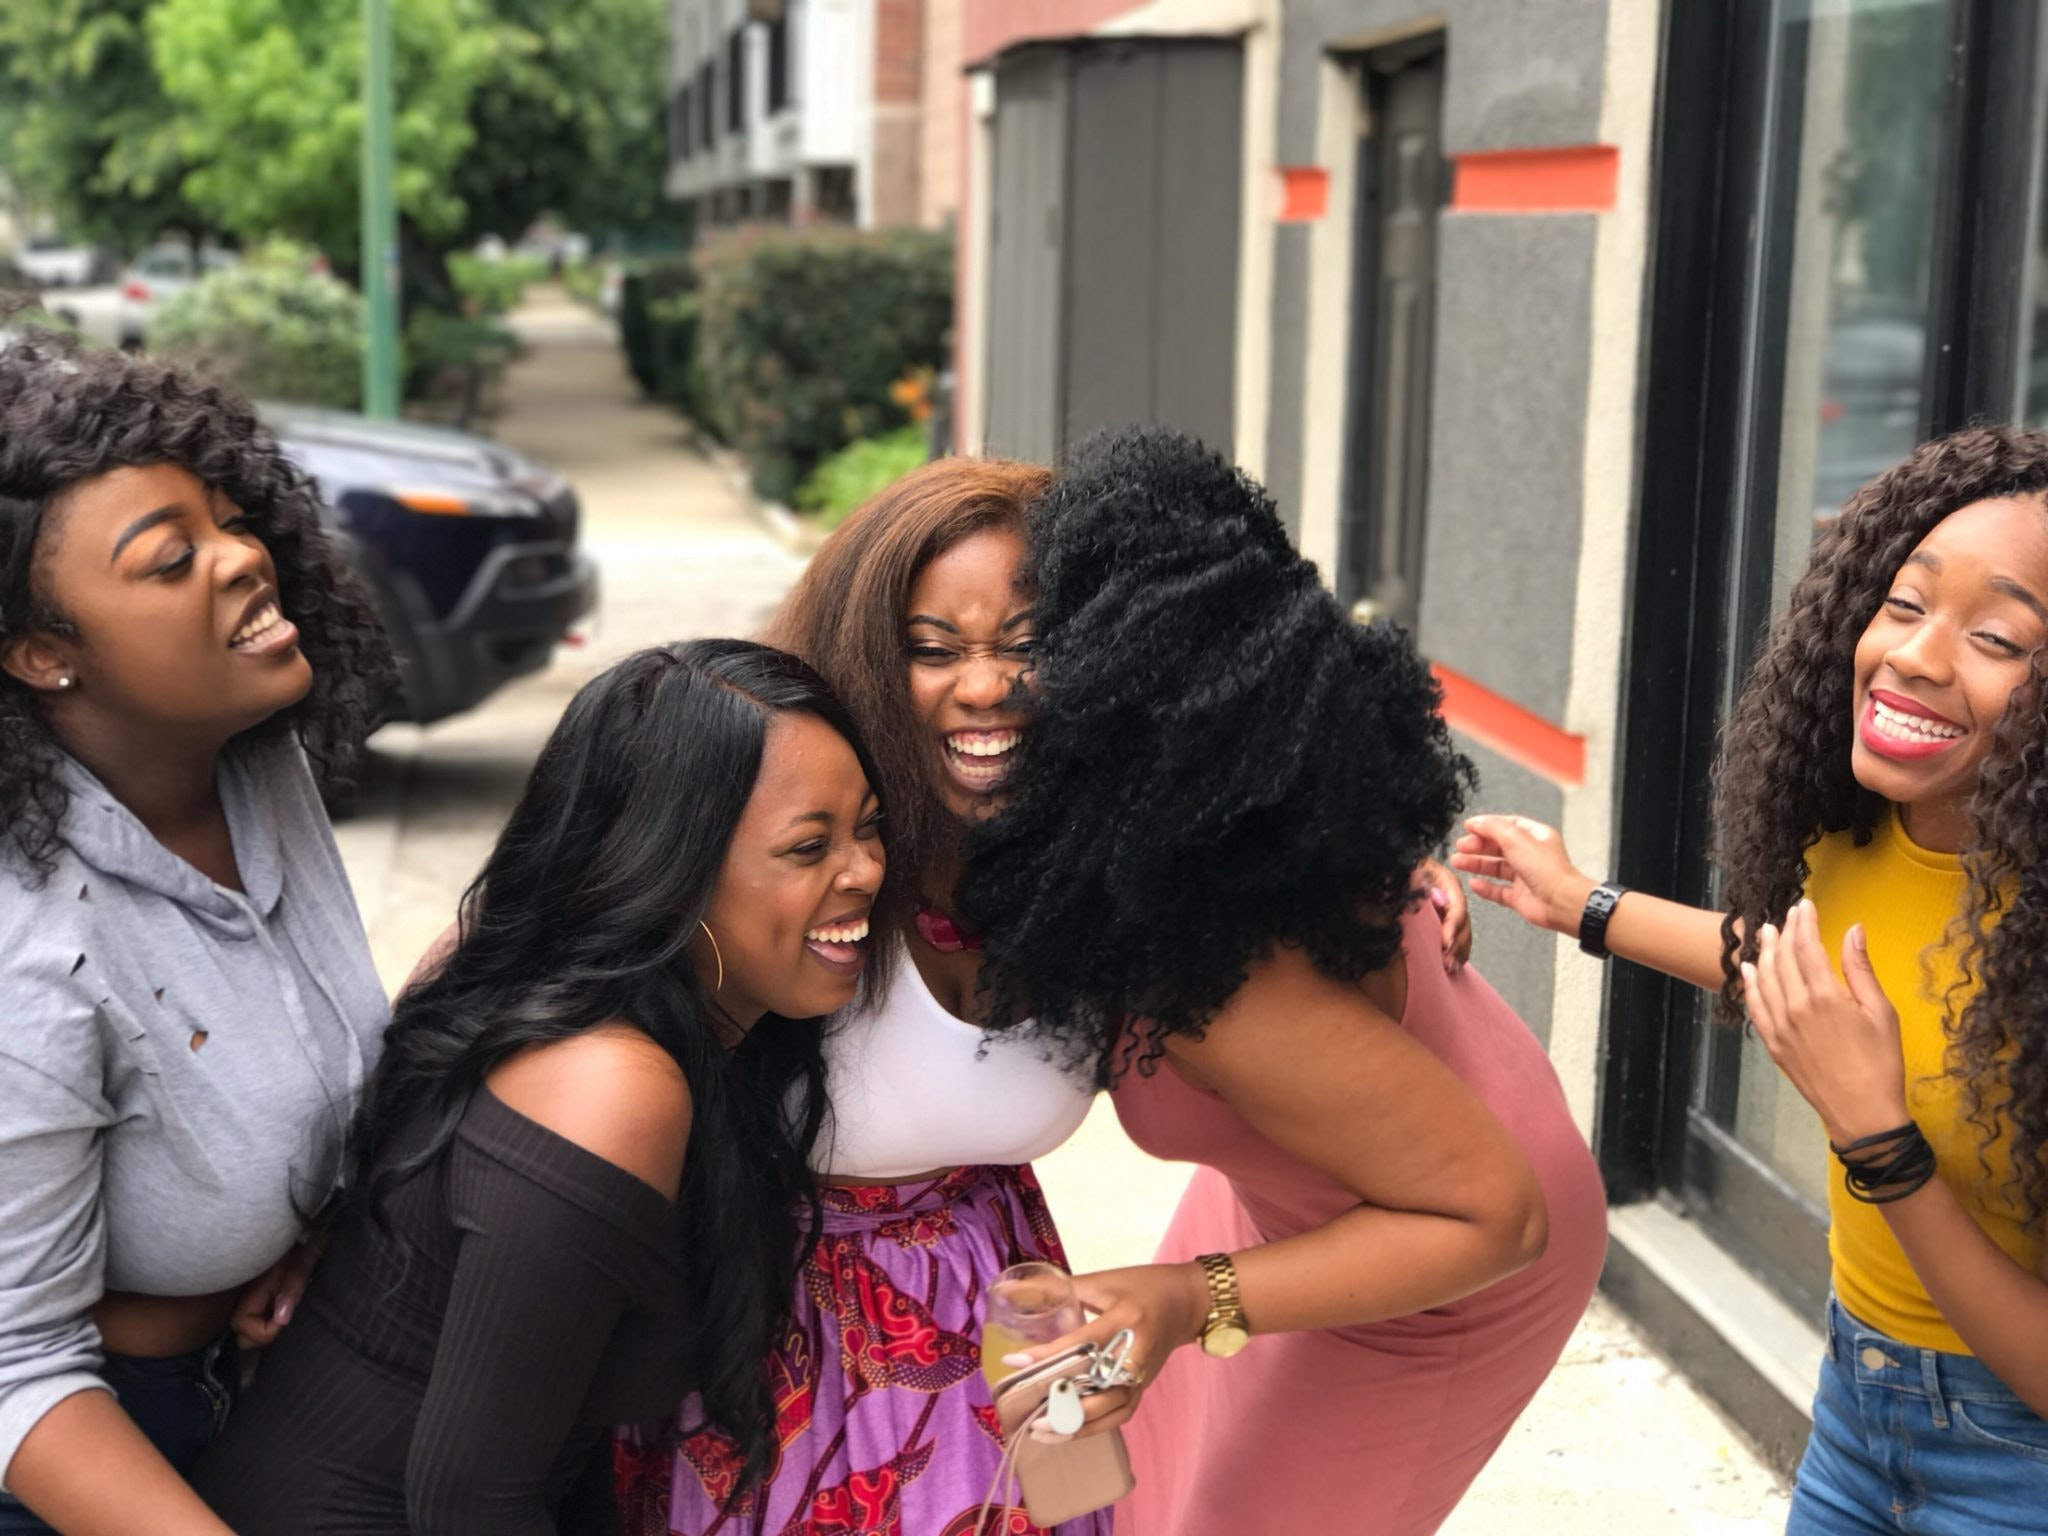 Group of five women, laughing together on a sidewalk.